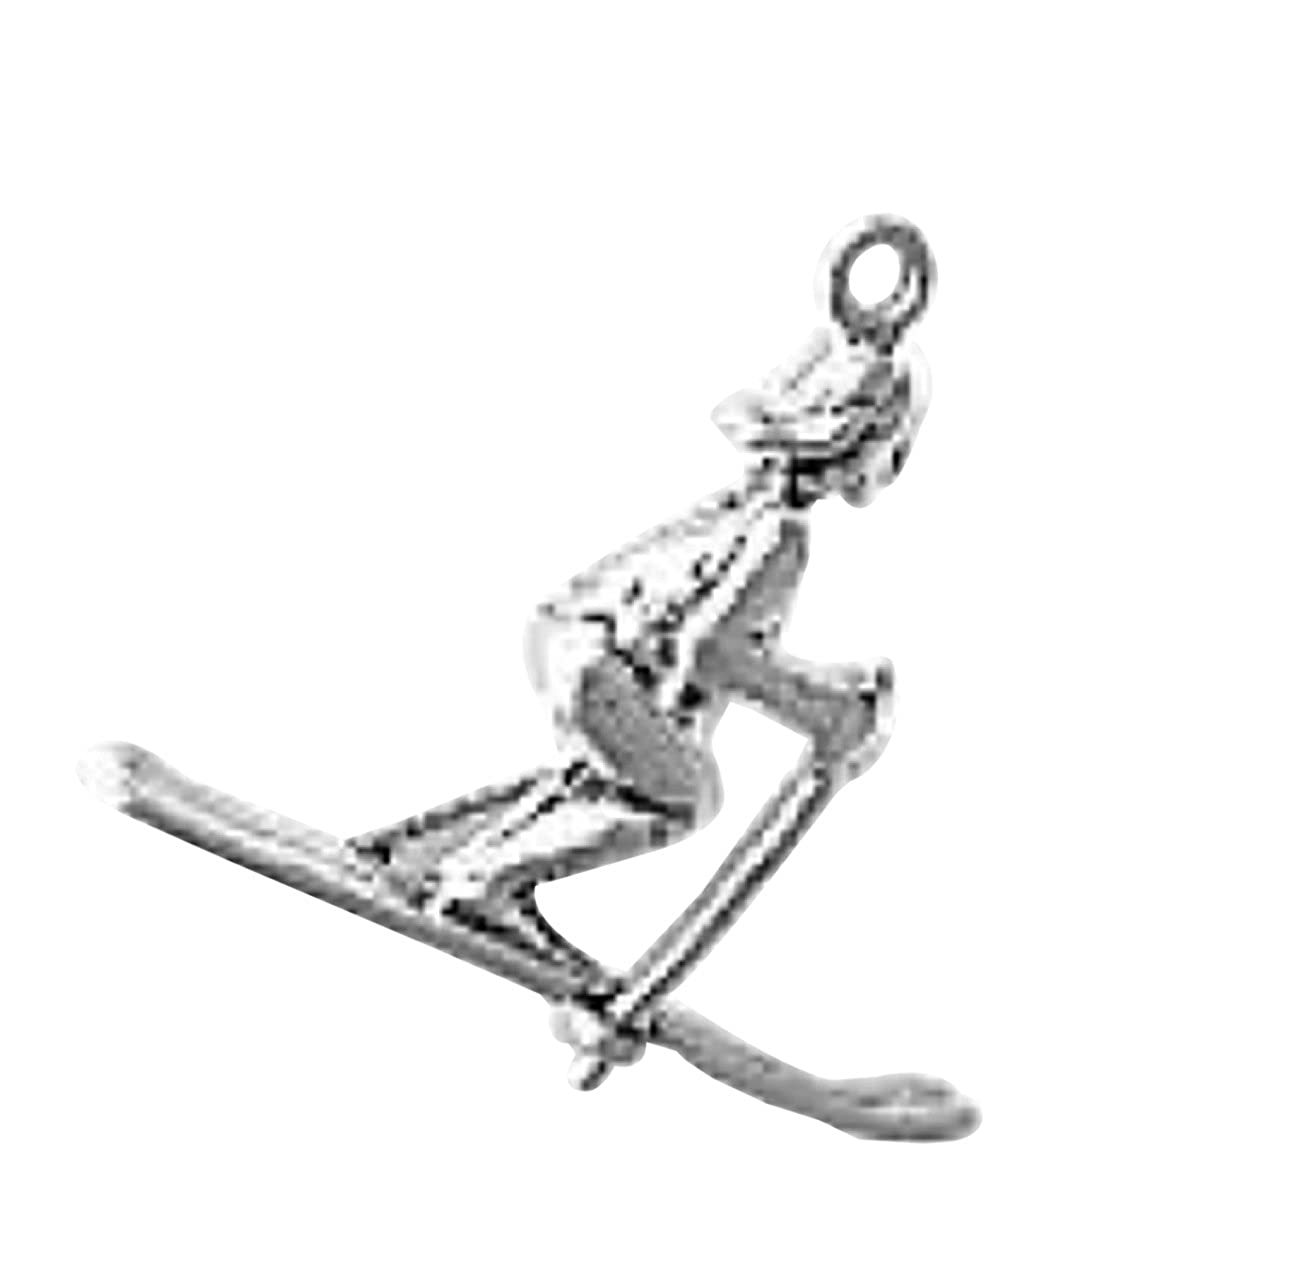 Sterling Silver 7 4.5mm Charm Bracelet With Attached 3D Female Snow Skier Charm